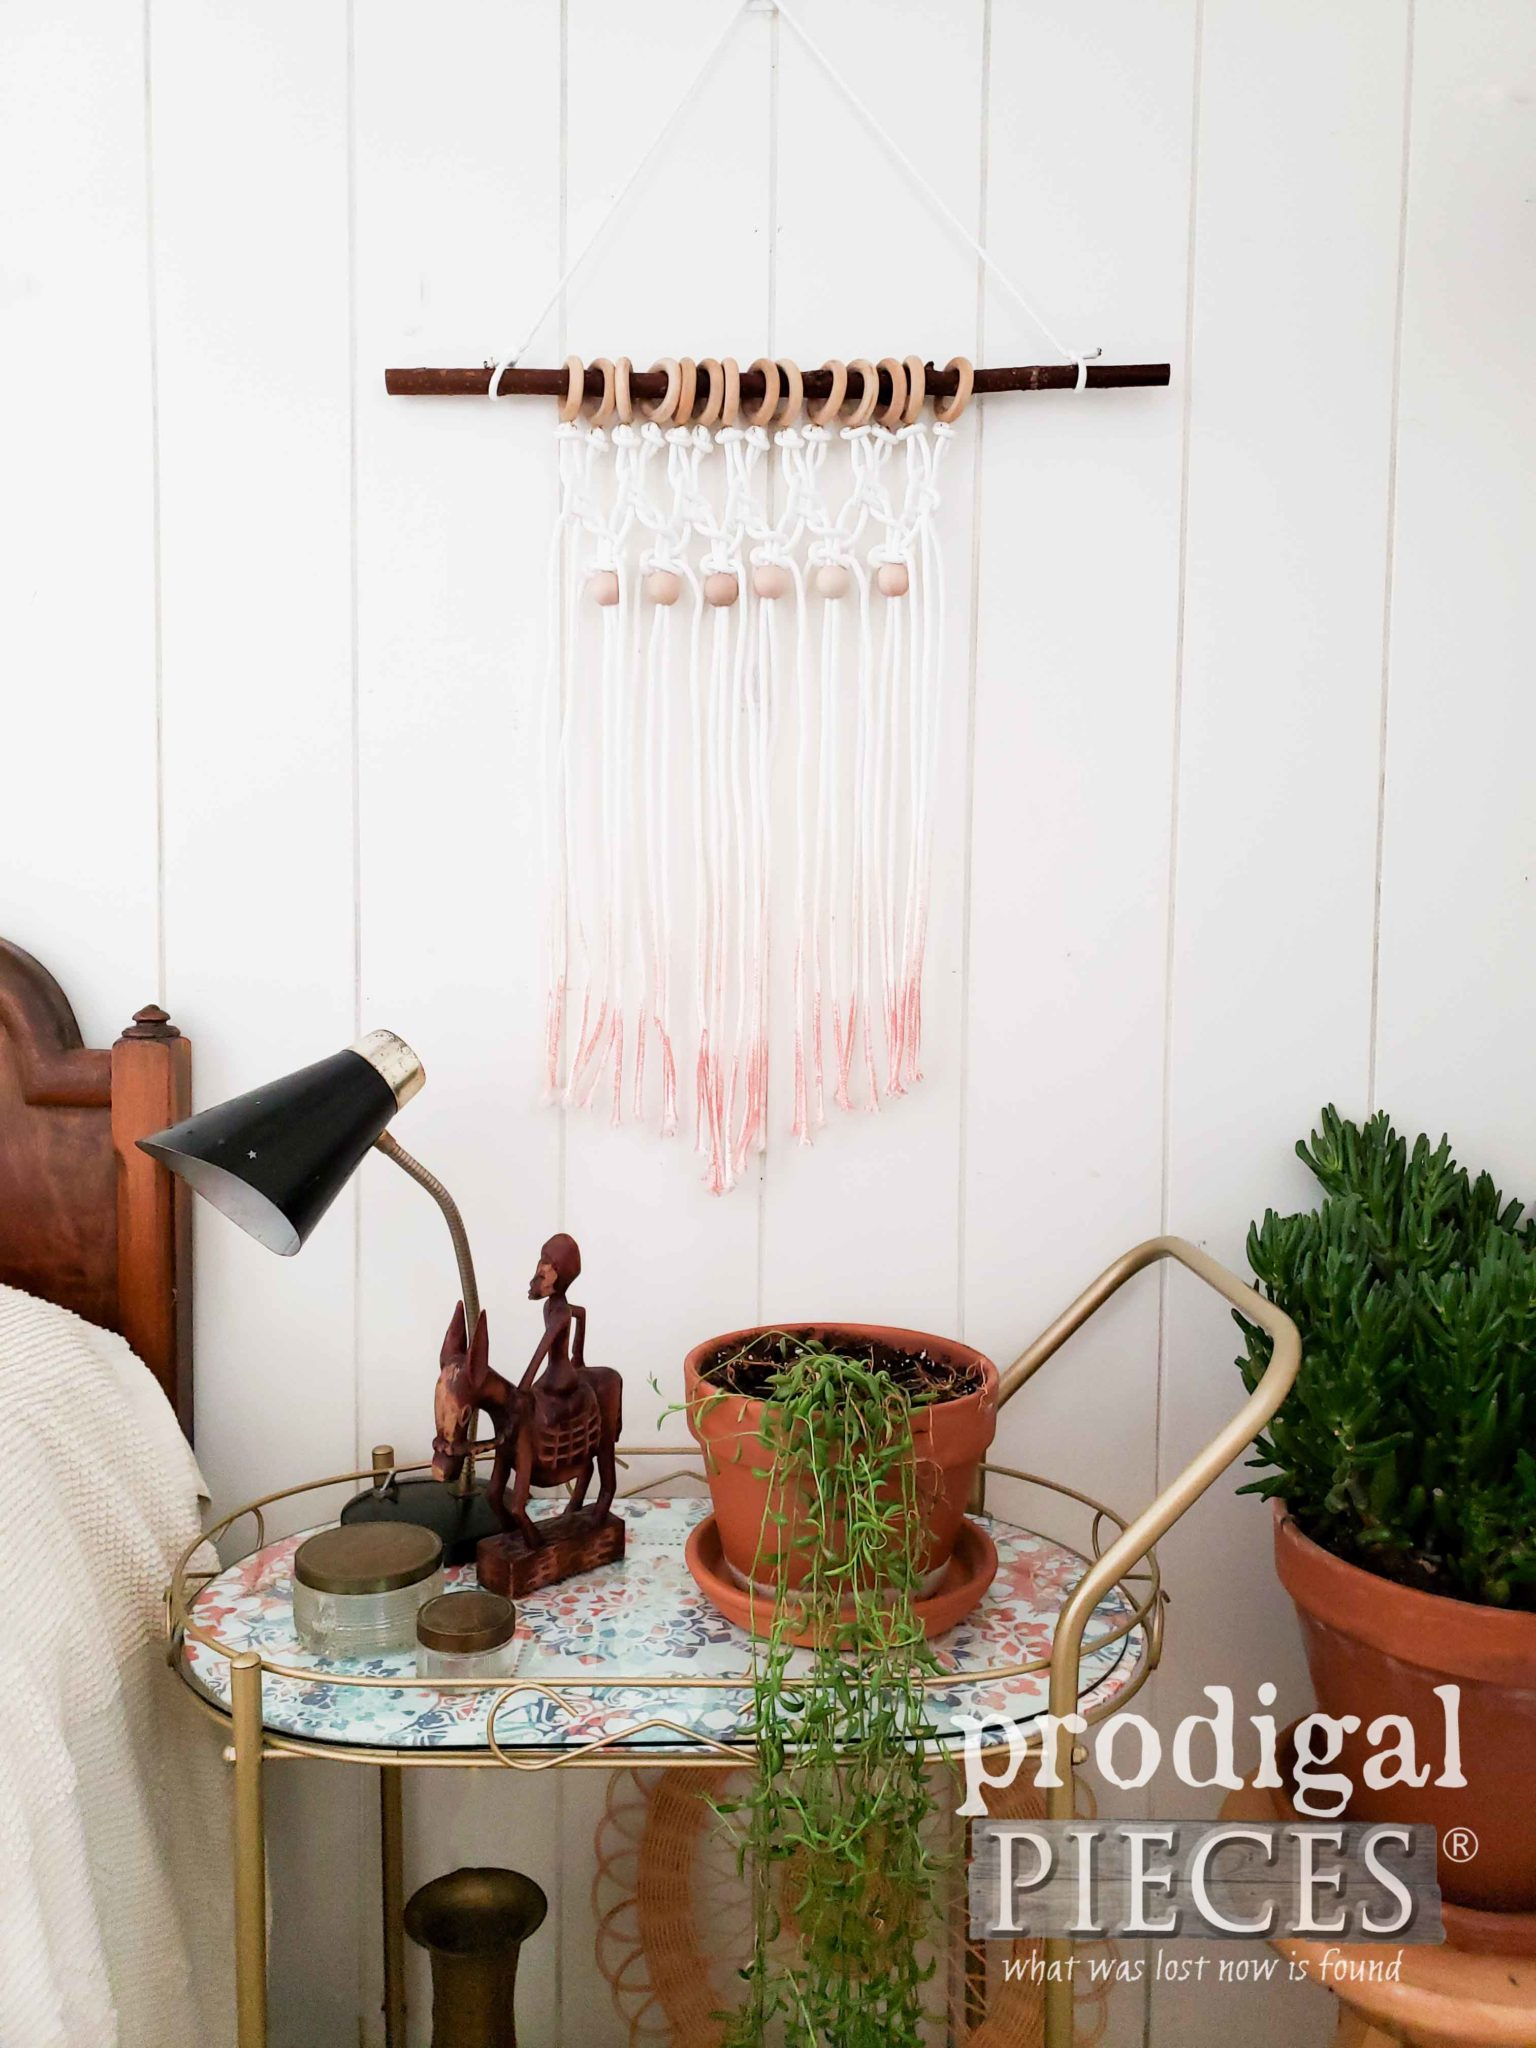 DIY Boho Chic Ombre Wall Art with Vintage Bar Cart by Larissa of Prodigal Pieces | prodigalpieces.com